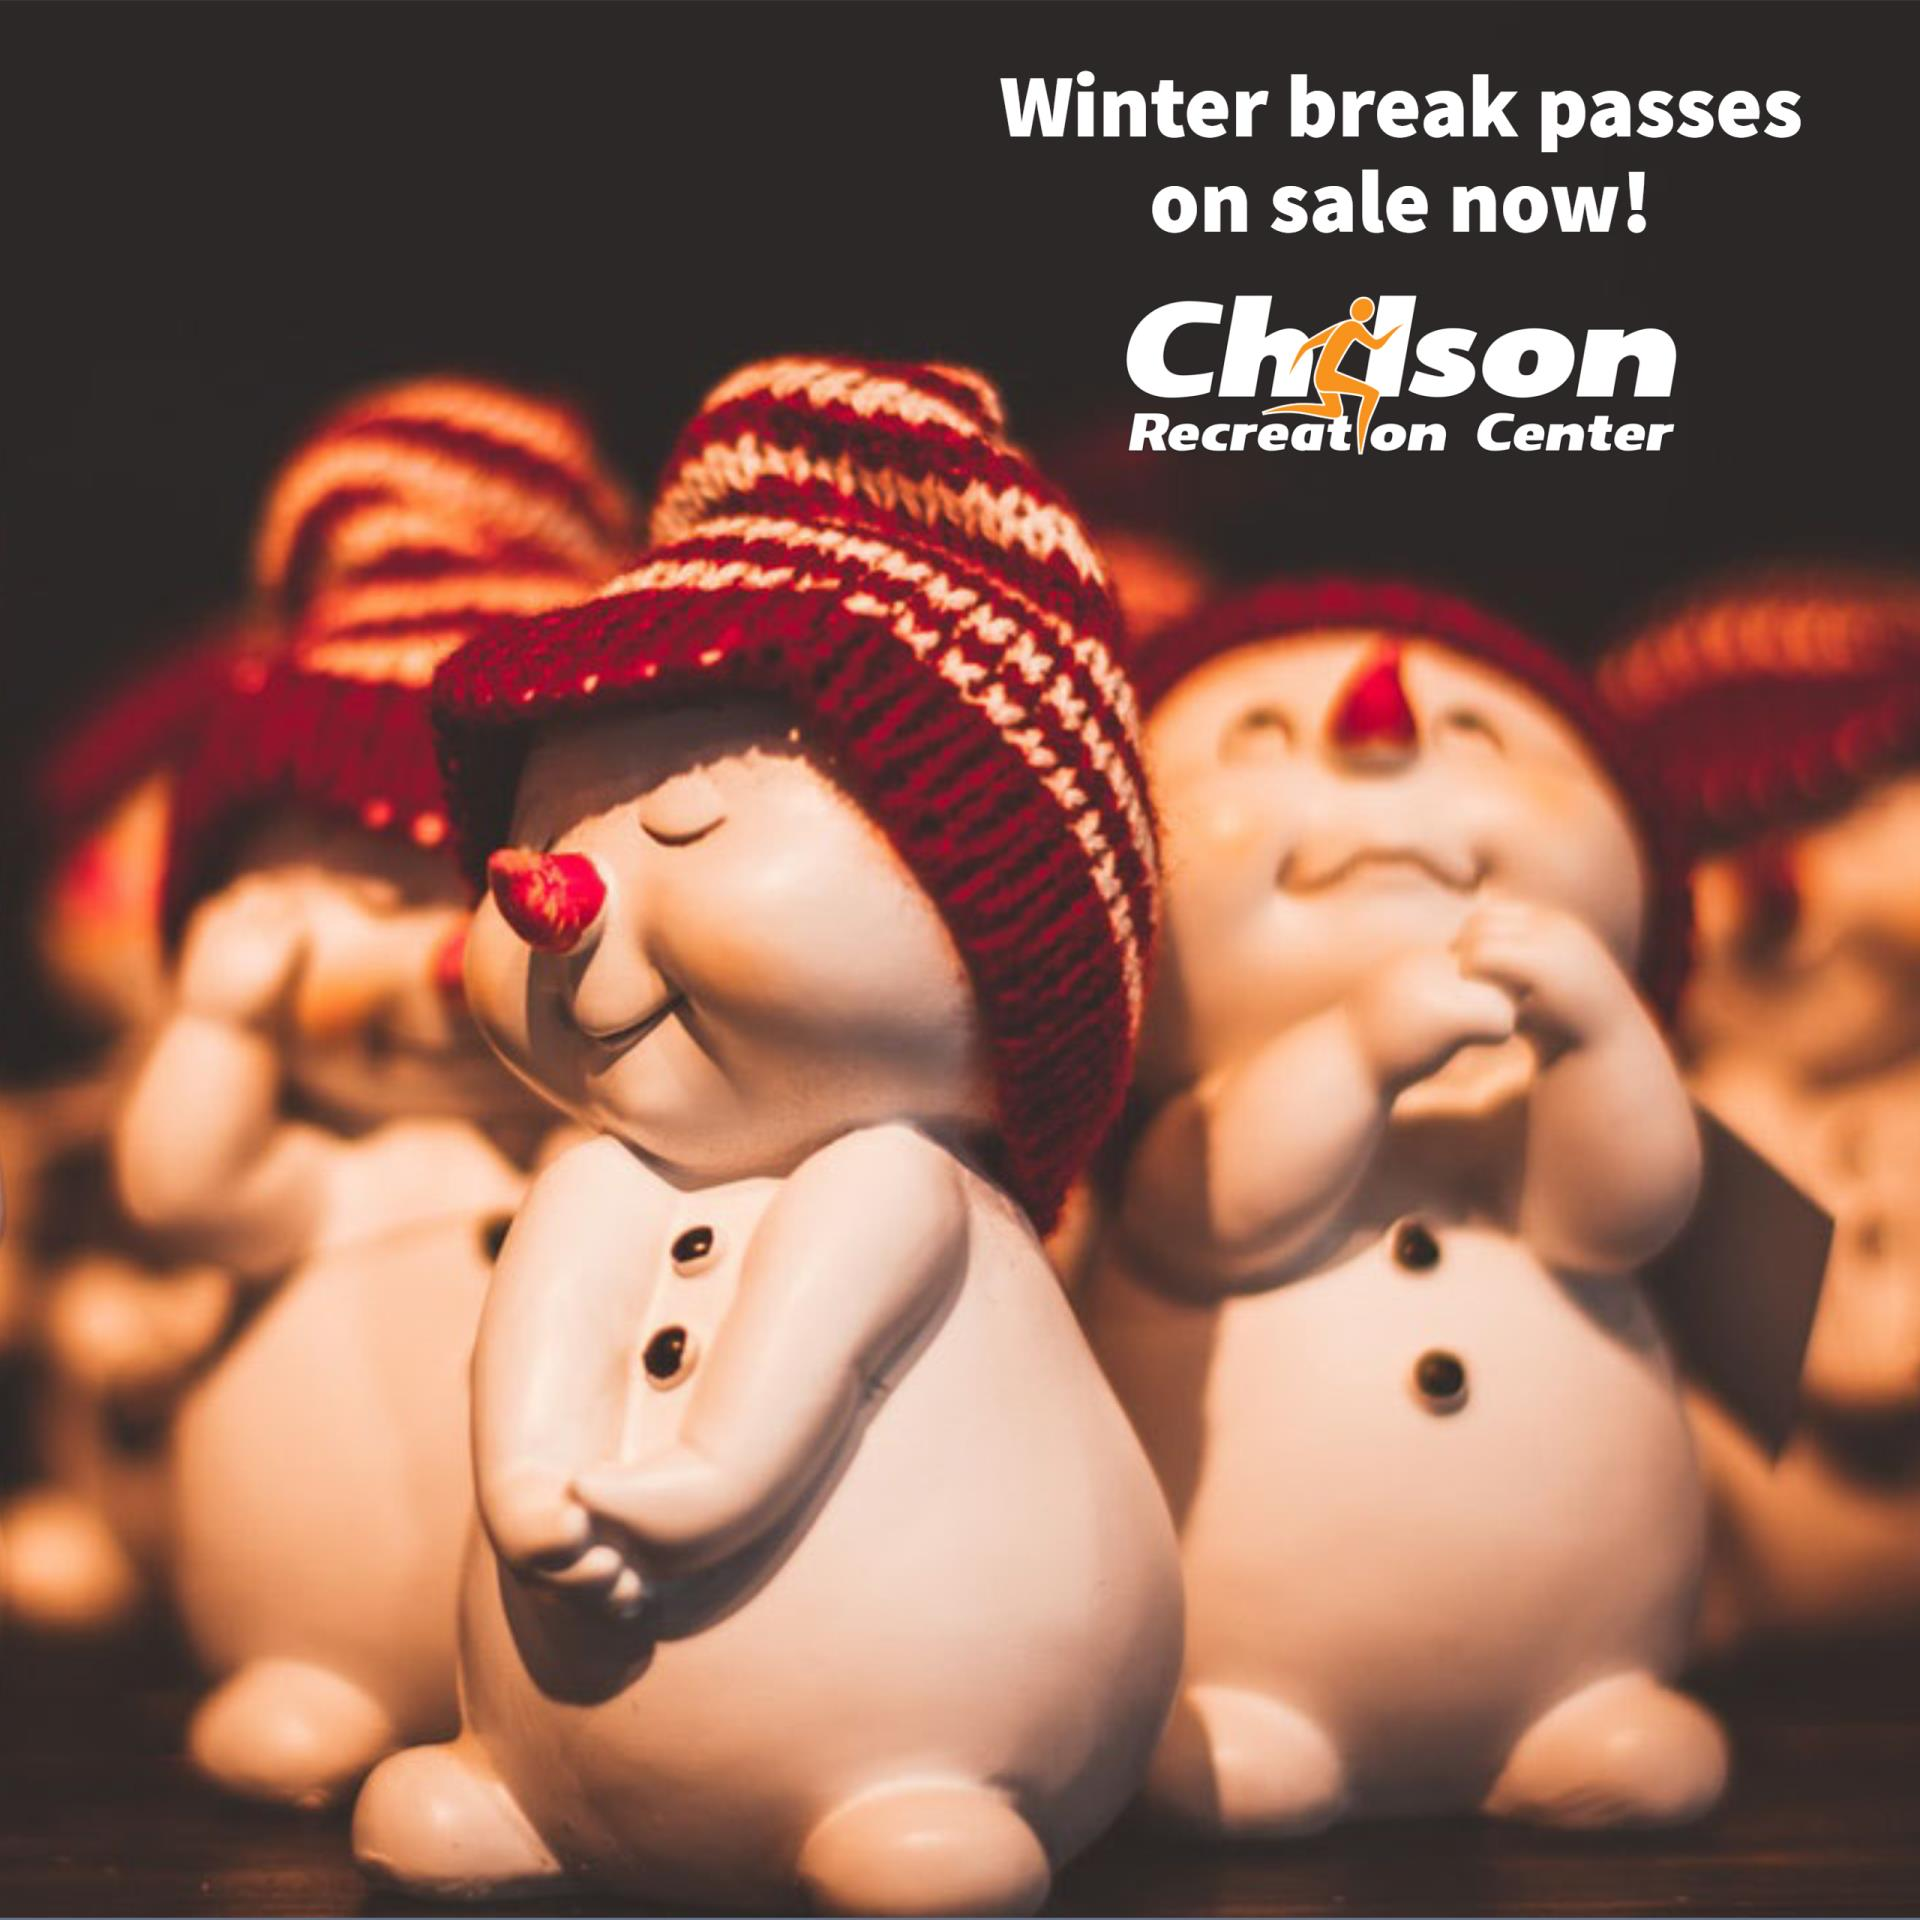 winter break passes for Chilson Recreation Center